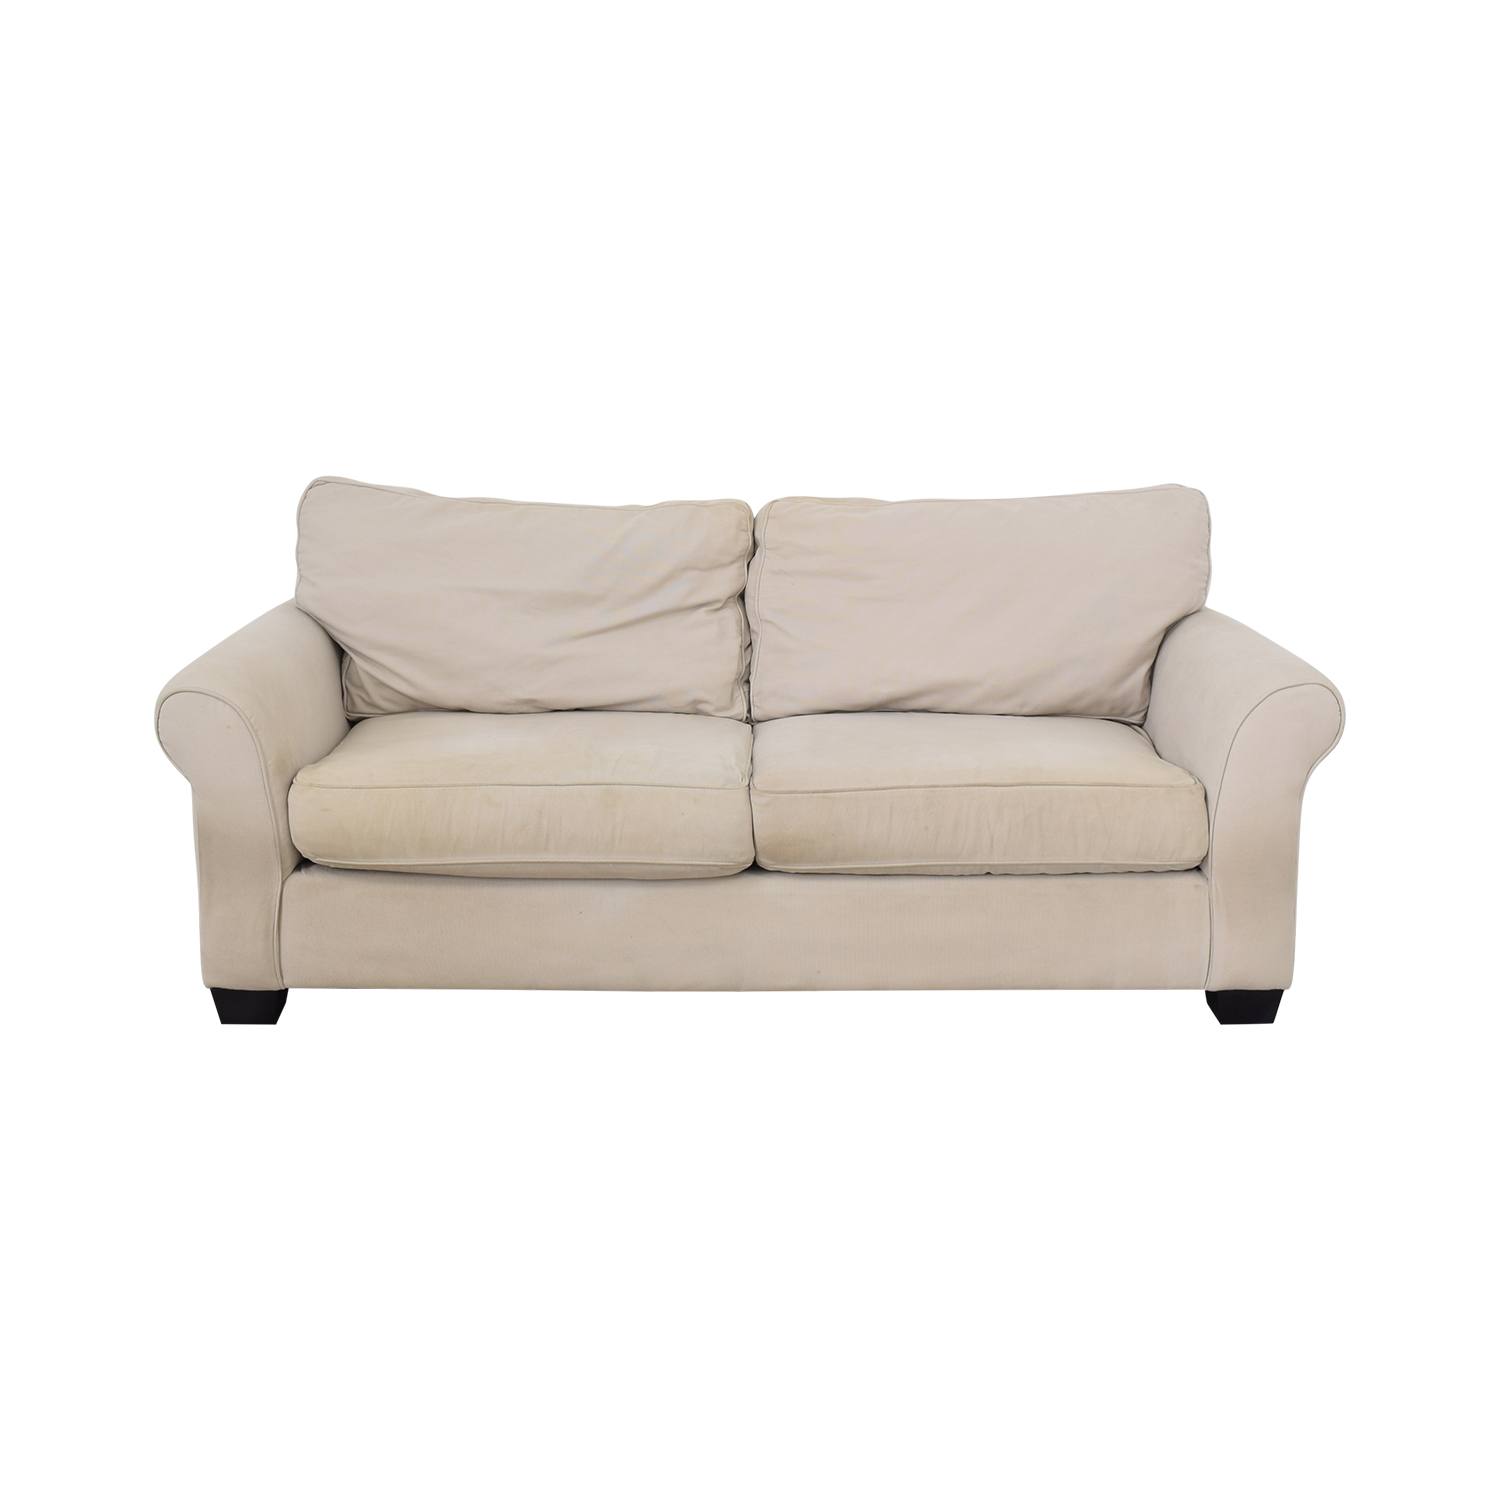 87 Off West Elm Antwerp Sofa Sofas